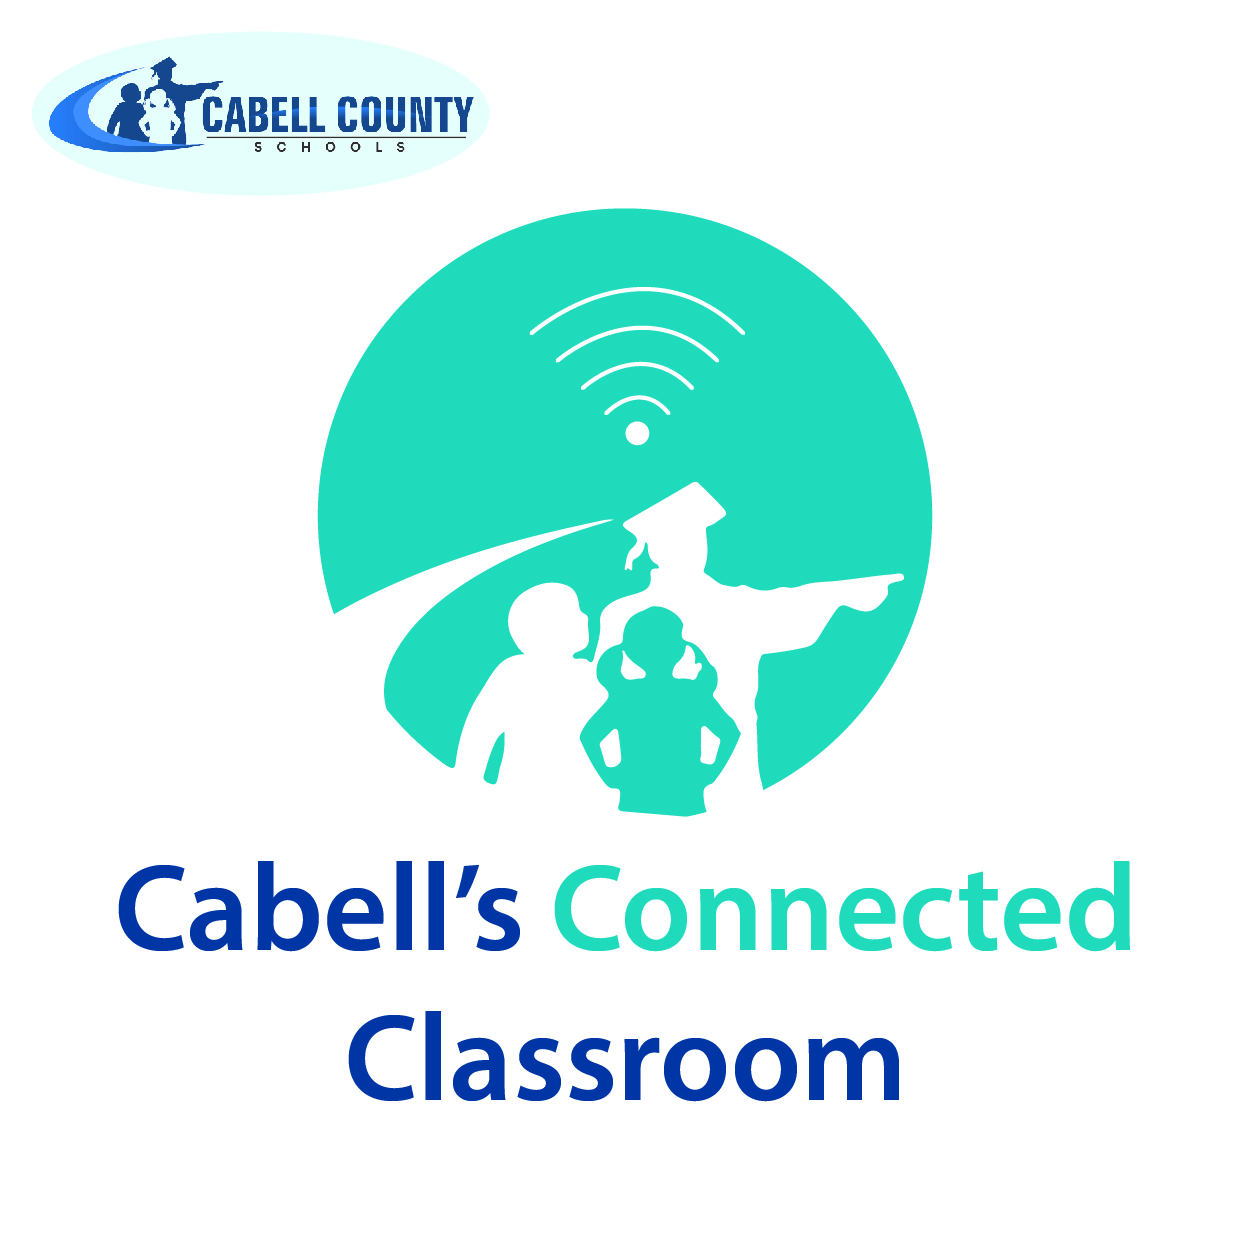 Connected classroom graphic